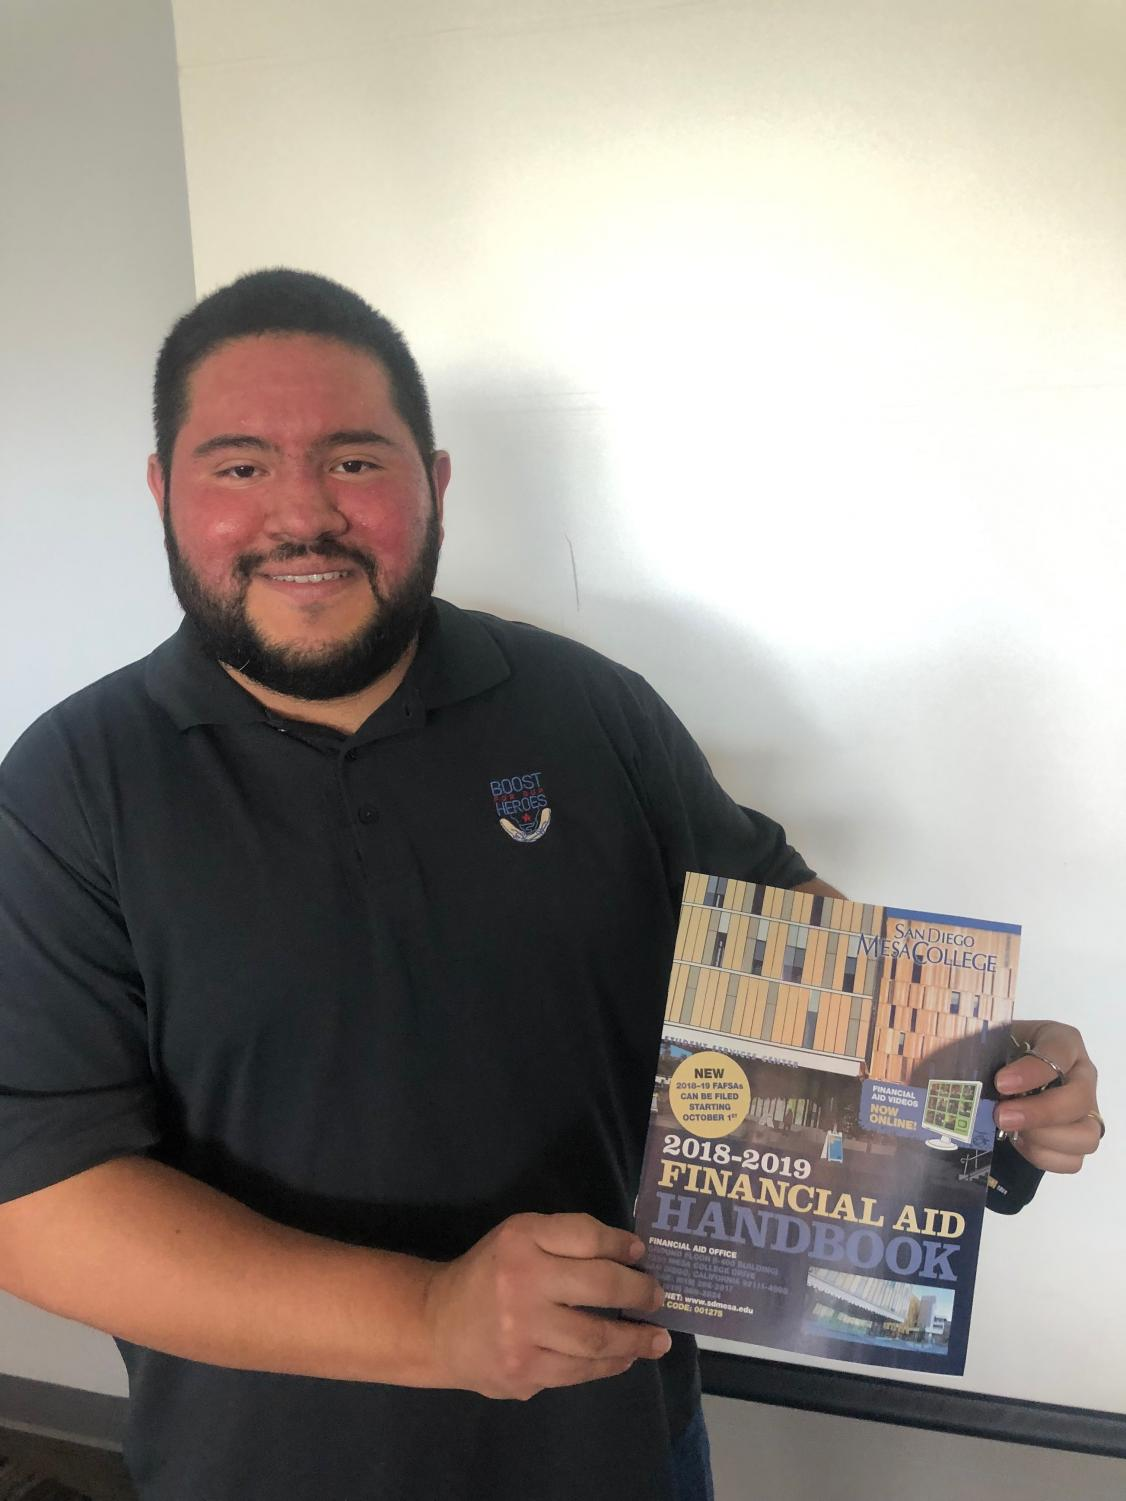 Felipe Arevalo showing off the Mesa College financial aid handbook after his presentation.